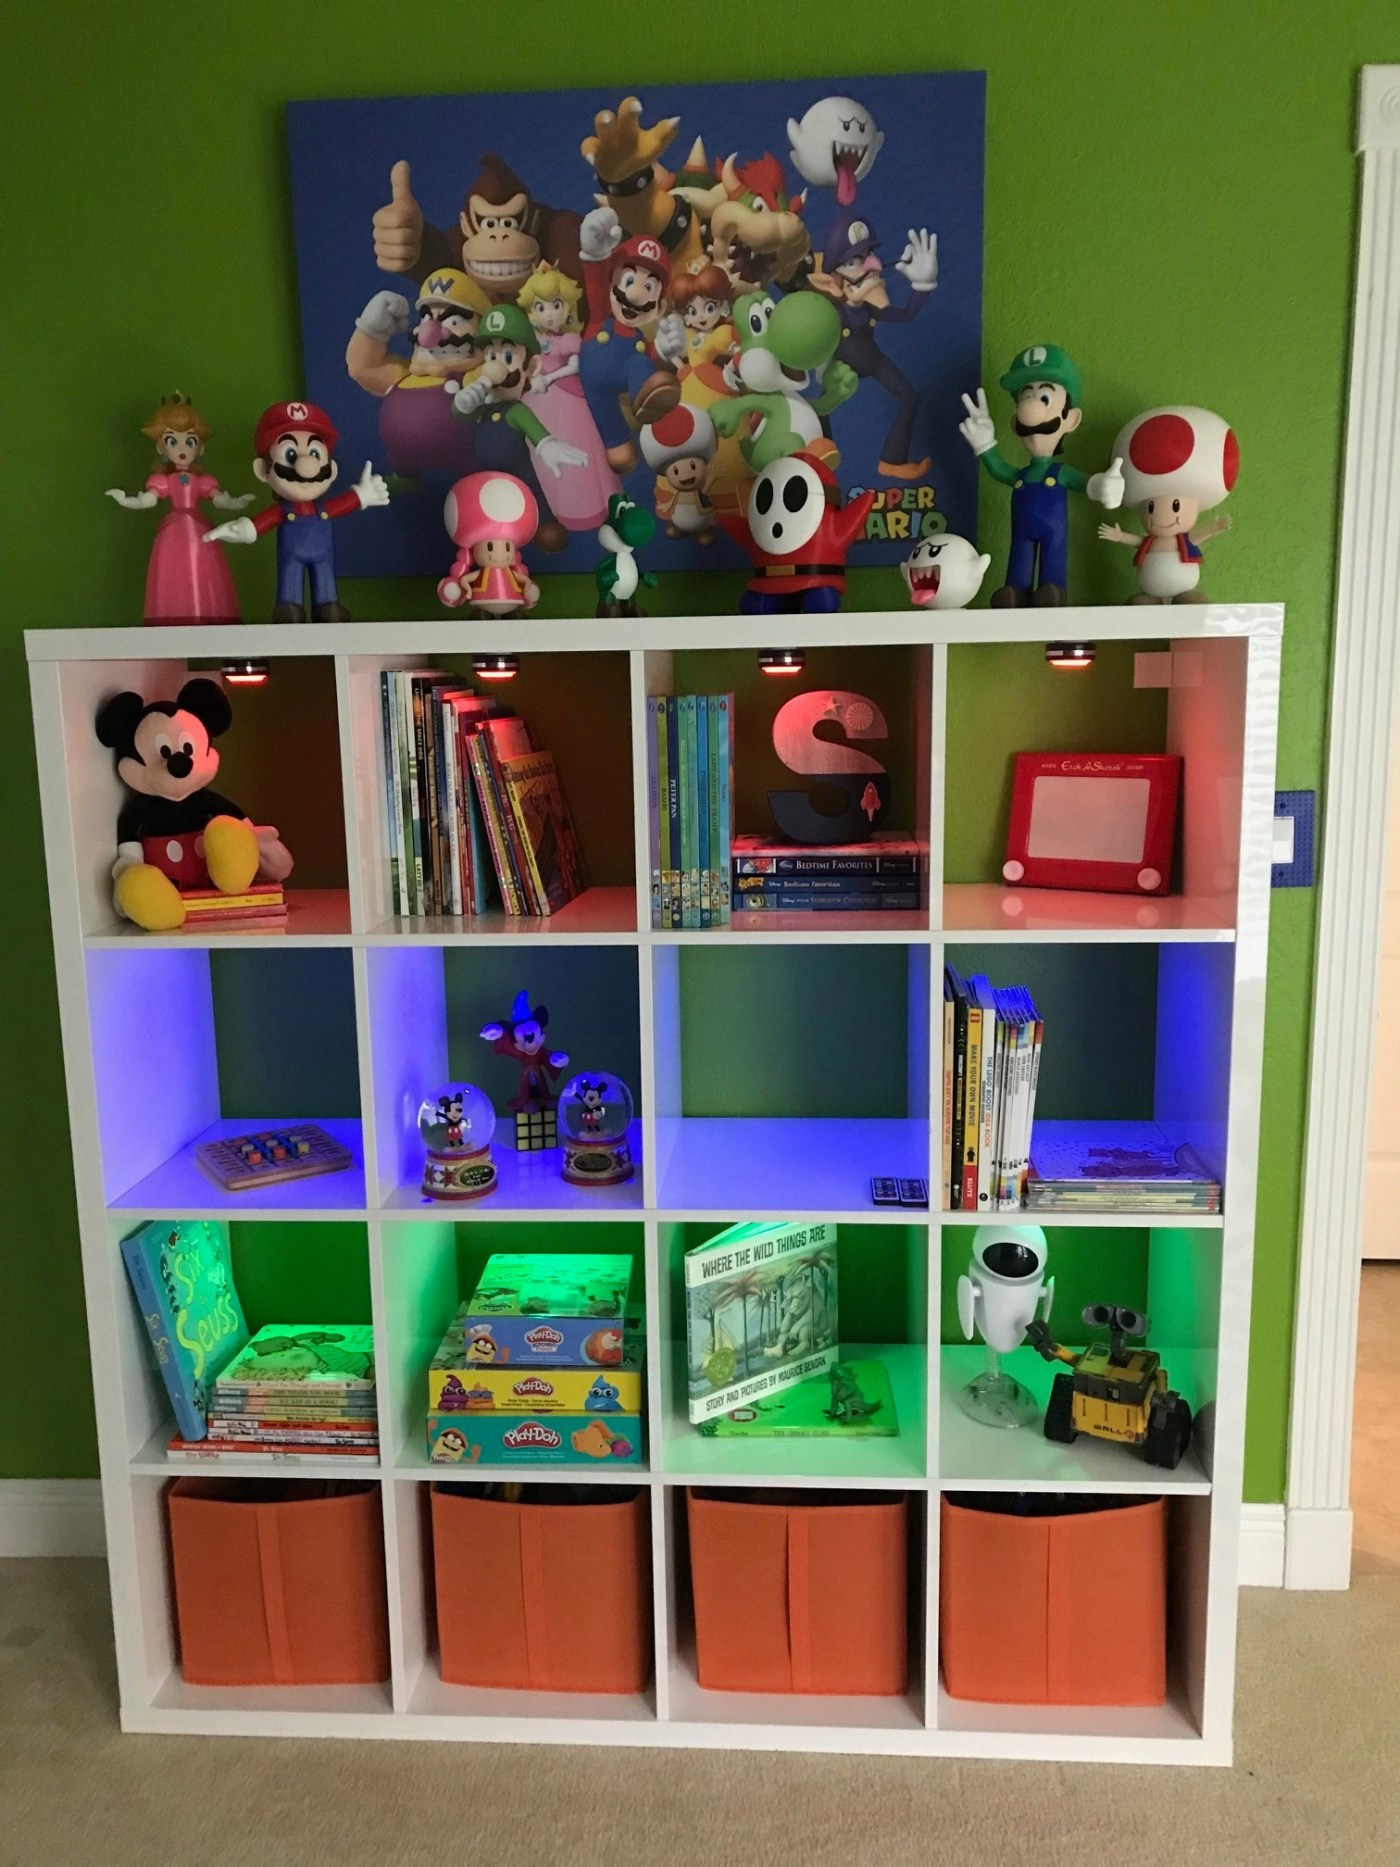 This is a fun way to organize your child's room